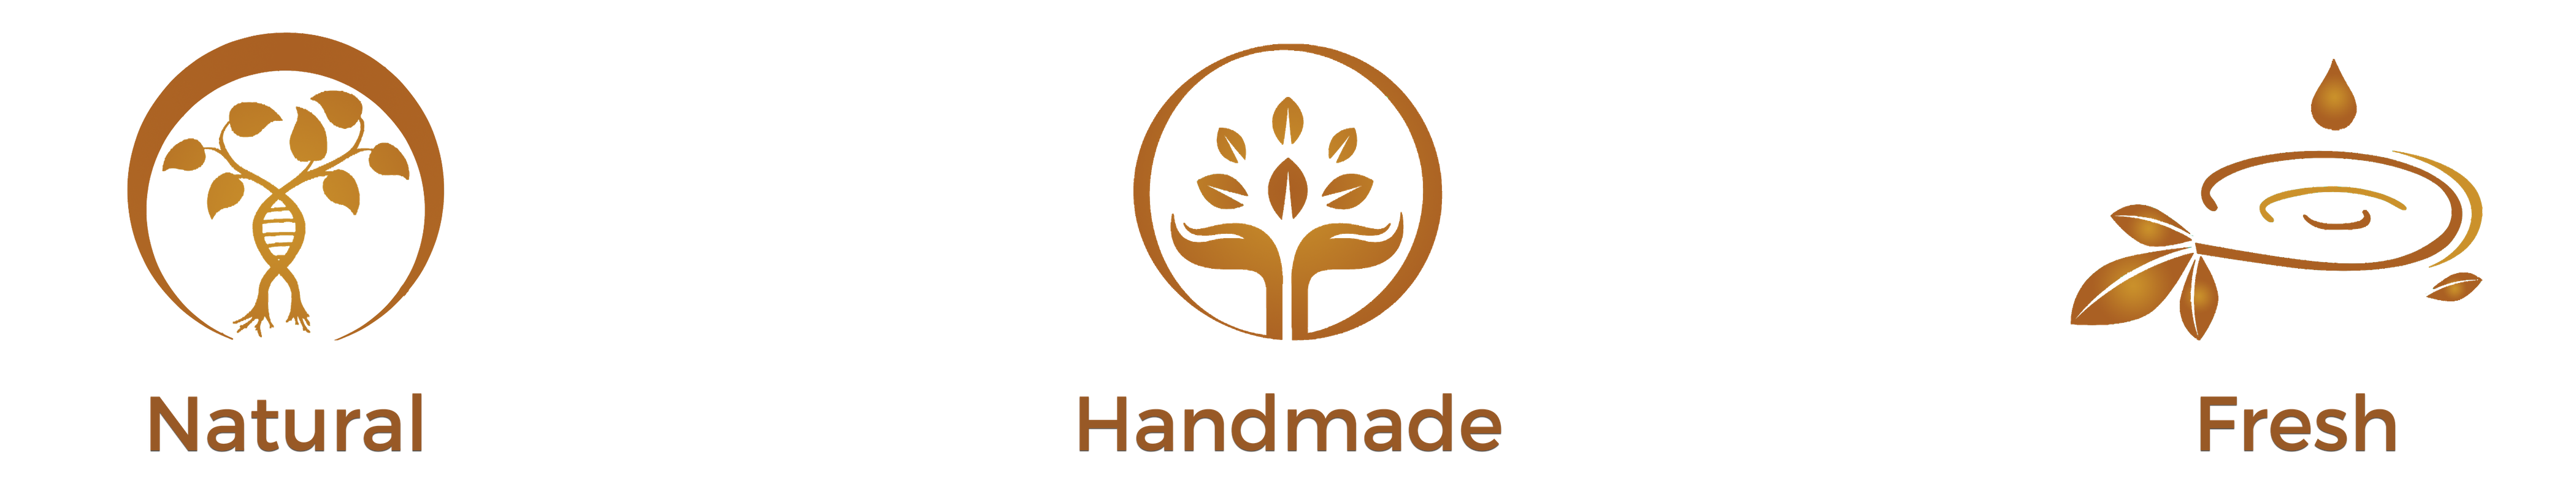 Natural, Handmade, Fresh